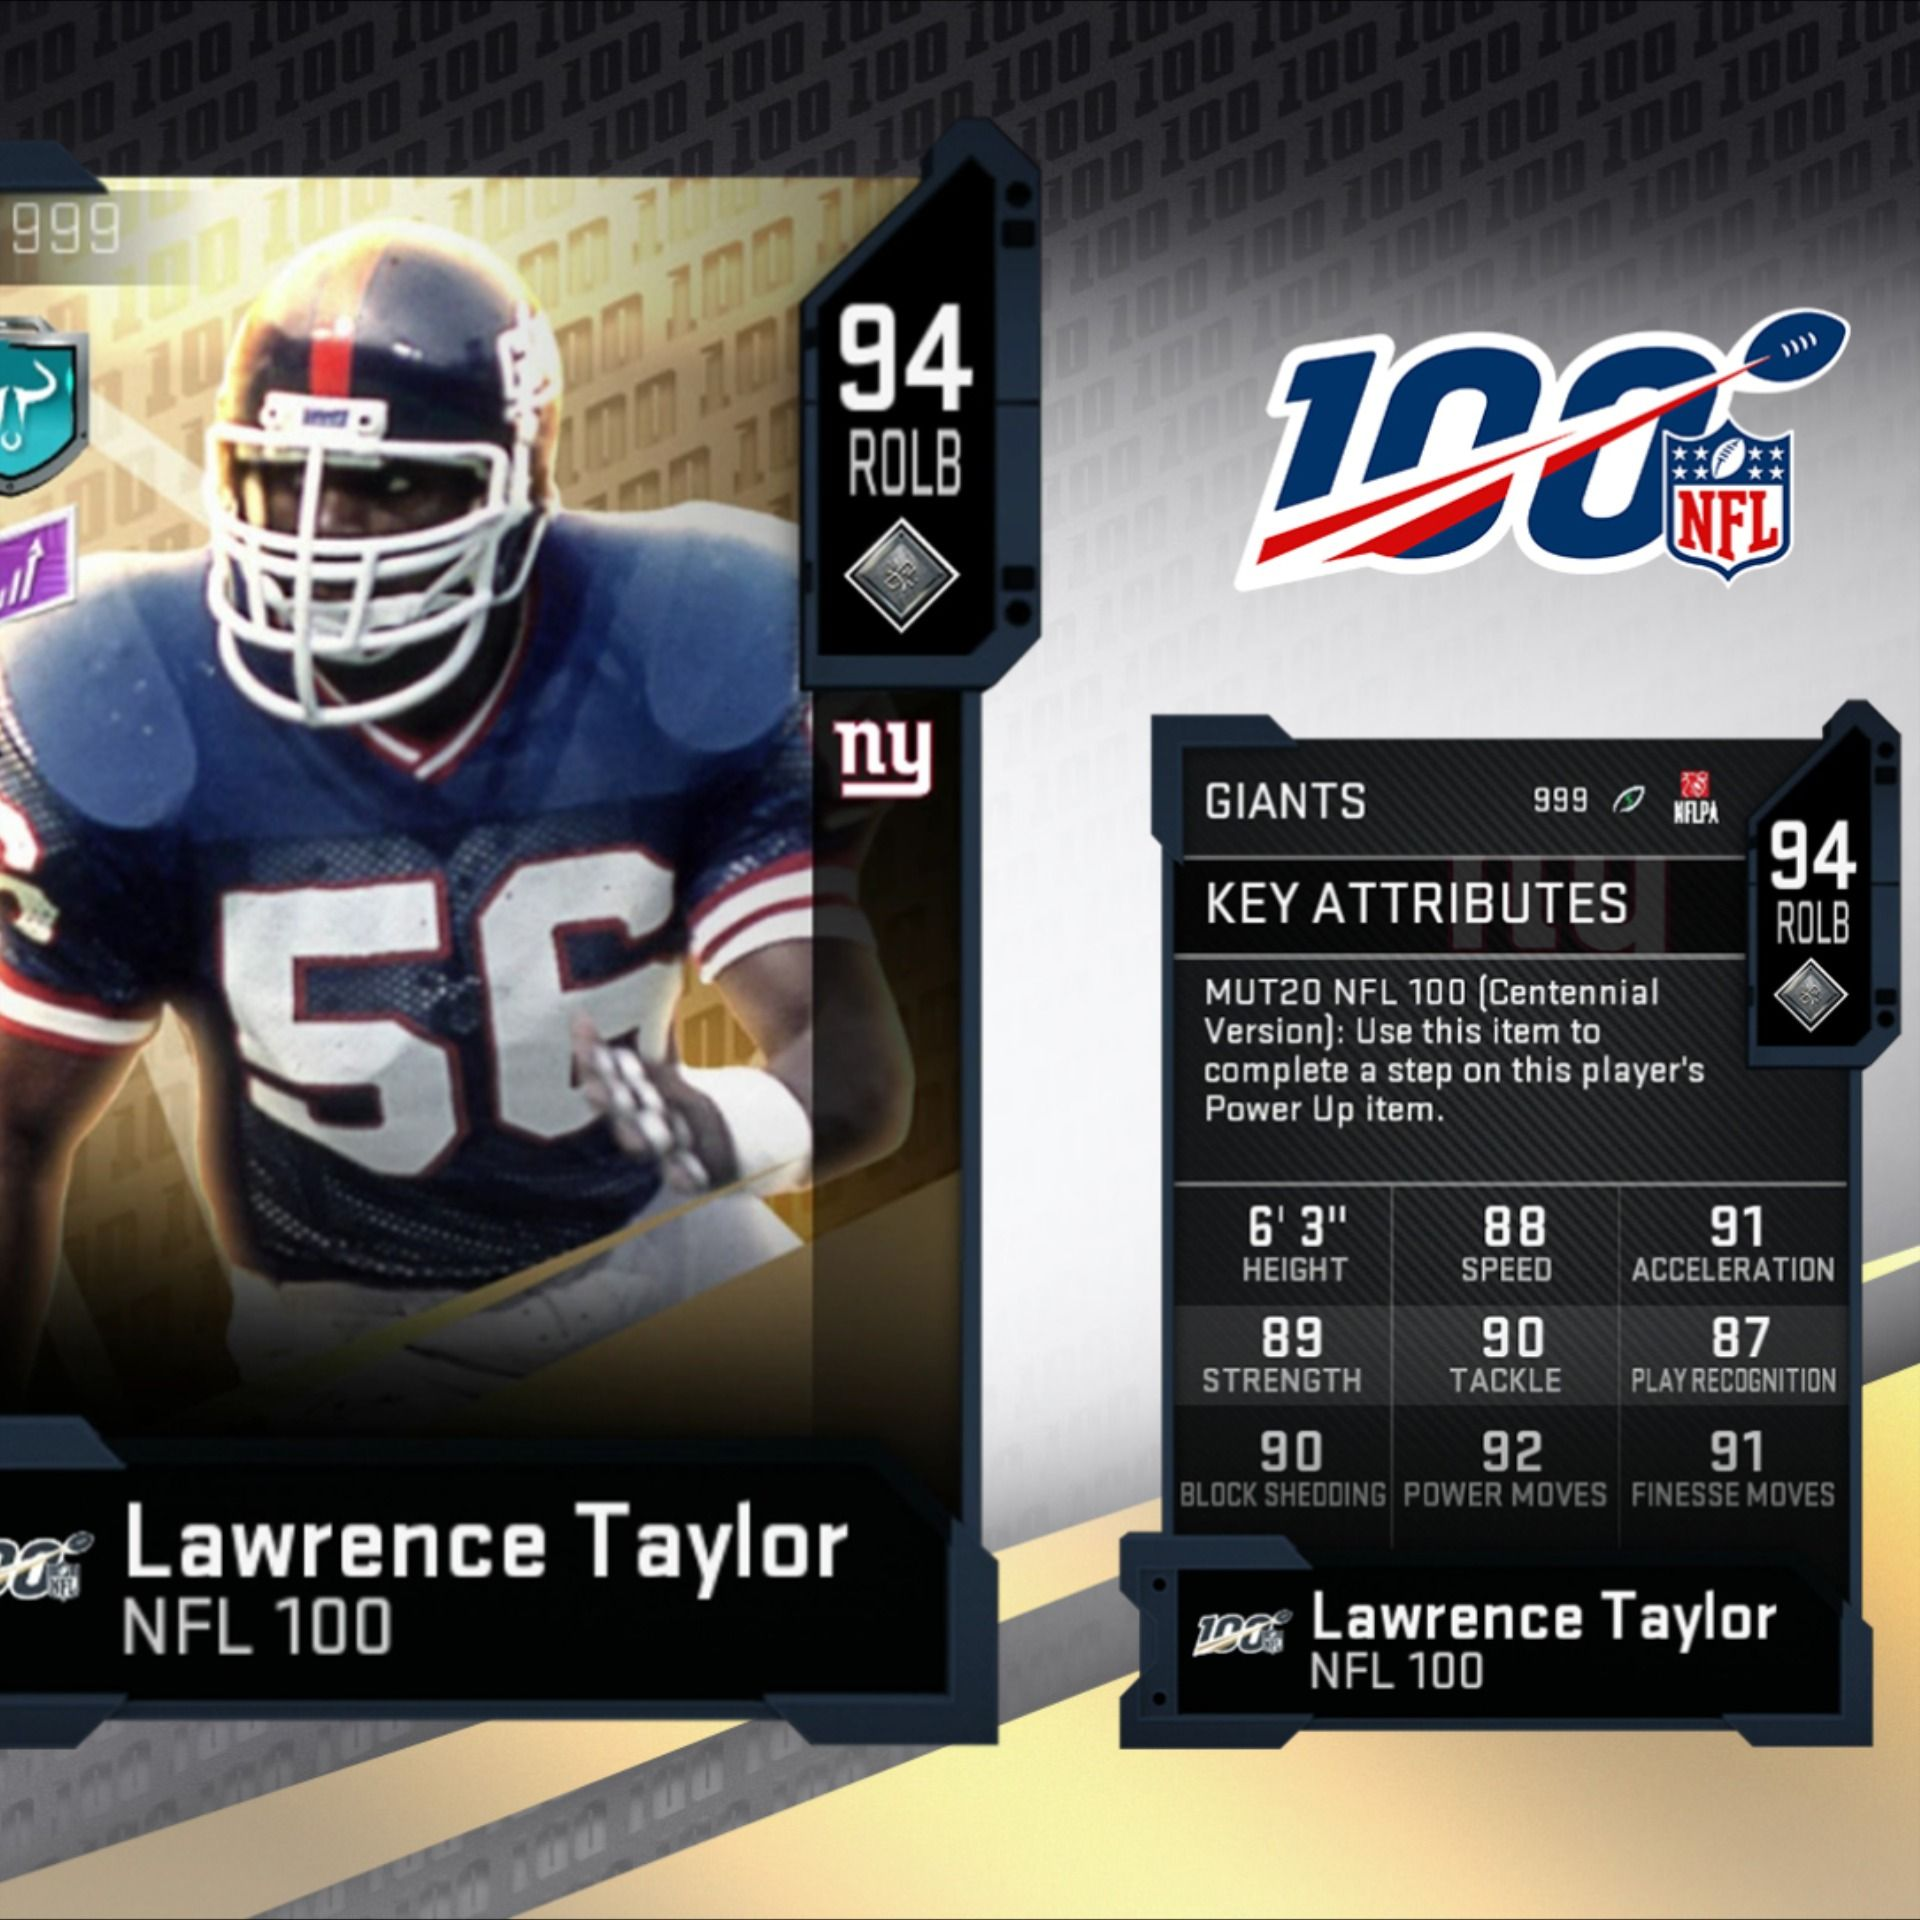 Madden 20 NFL 100 Players Lawrence Taylor and Bobby Bell